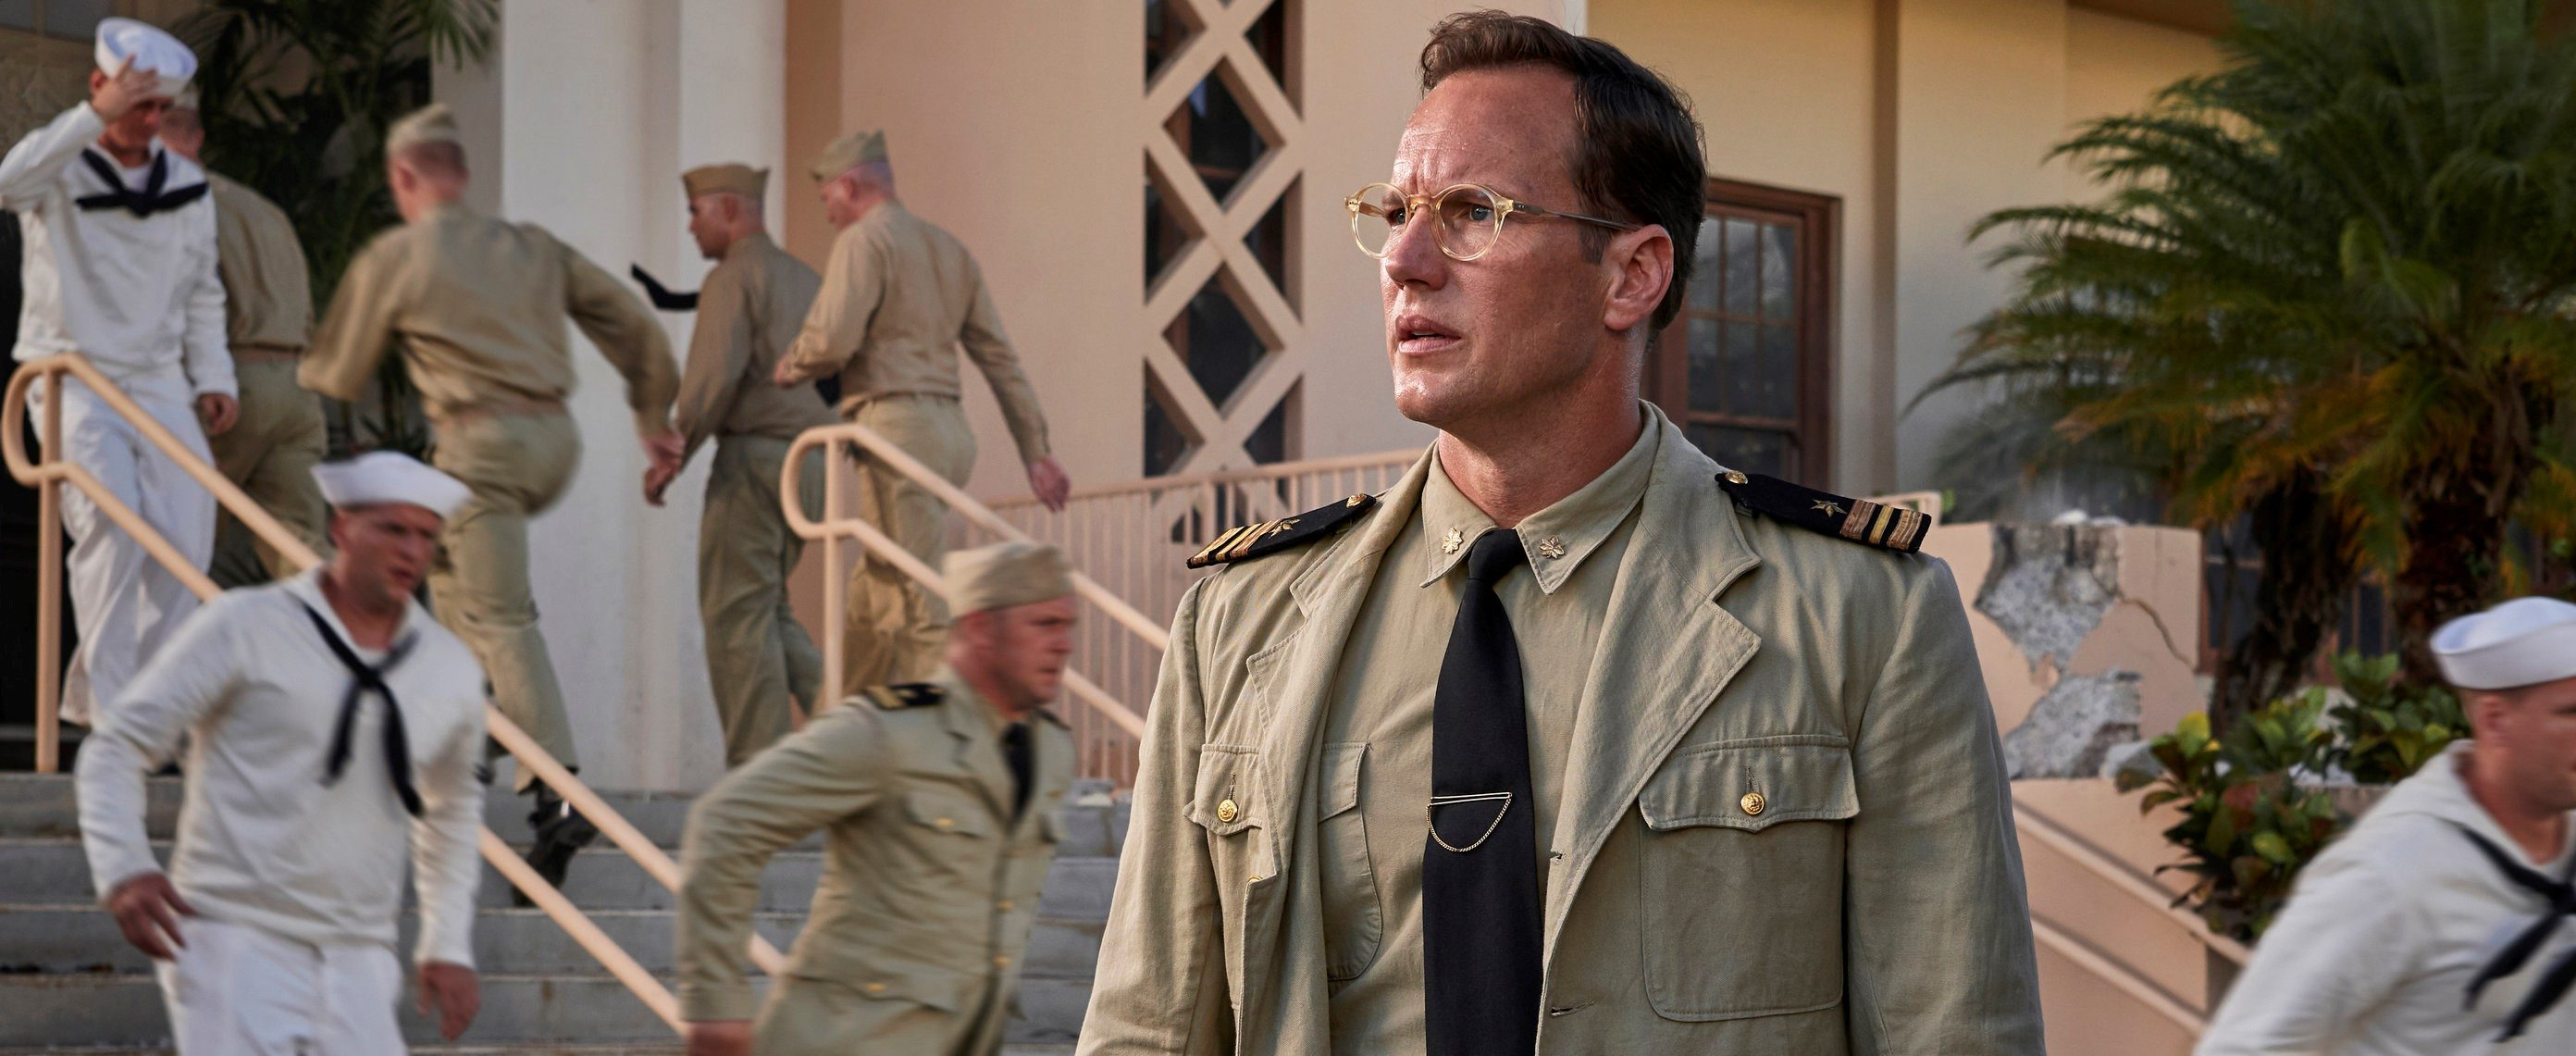 Midway Movie 2019, Midway Movie Patrick Wilson, Midway Film 2019